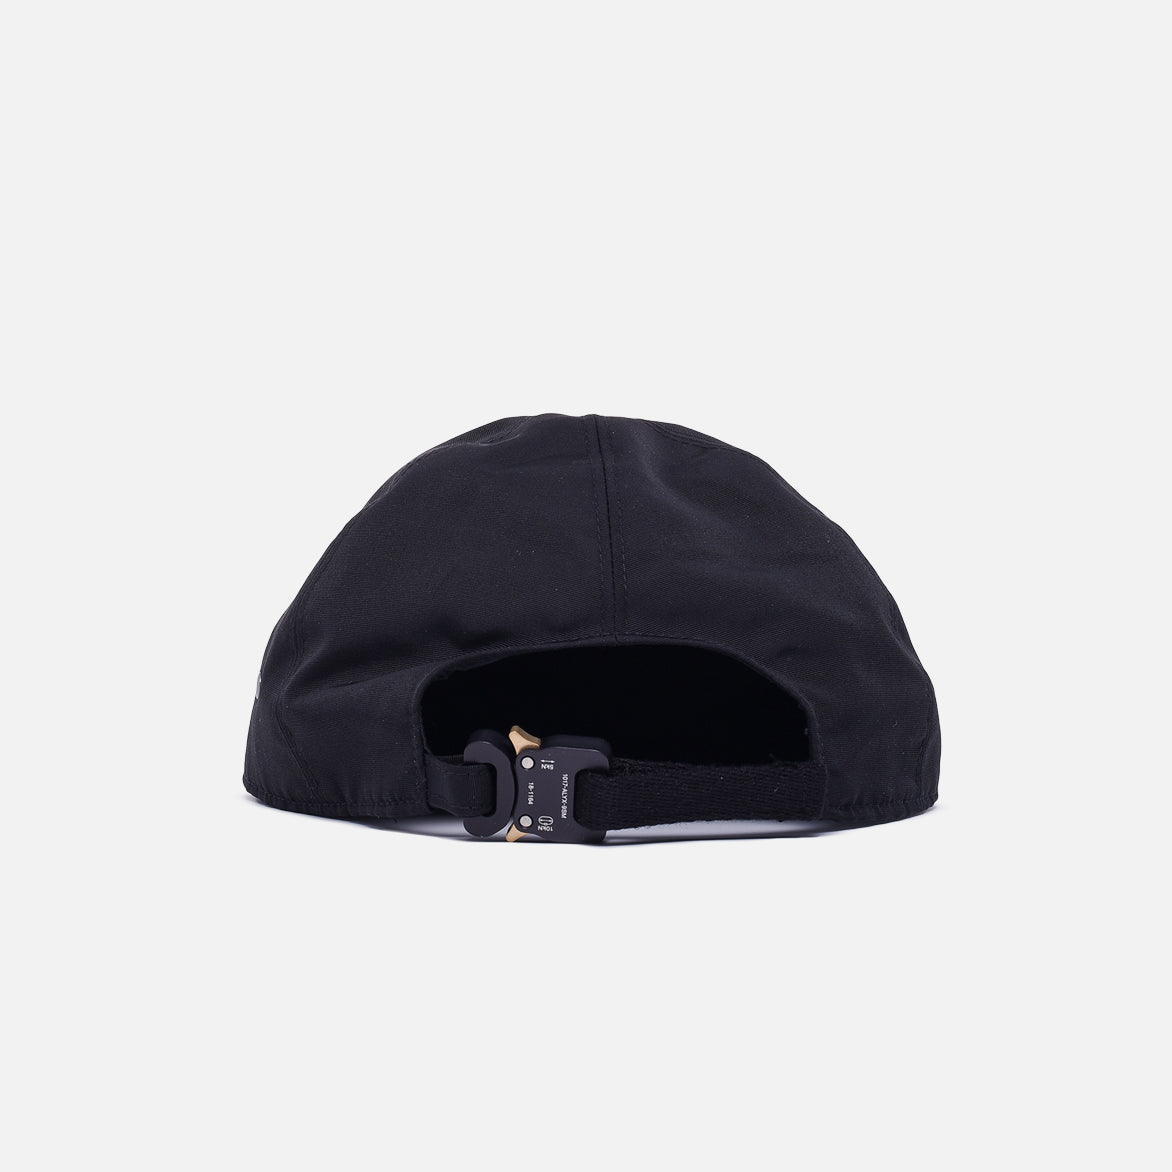 BASEBALL CAP WITH BUCKLE - BLACK